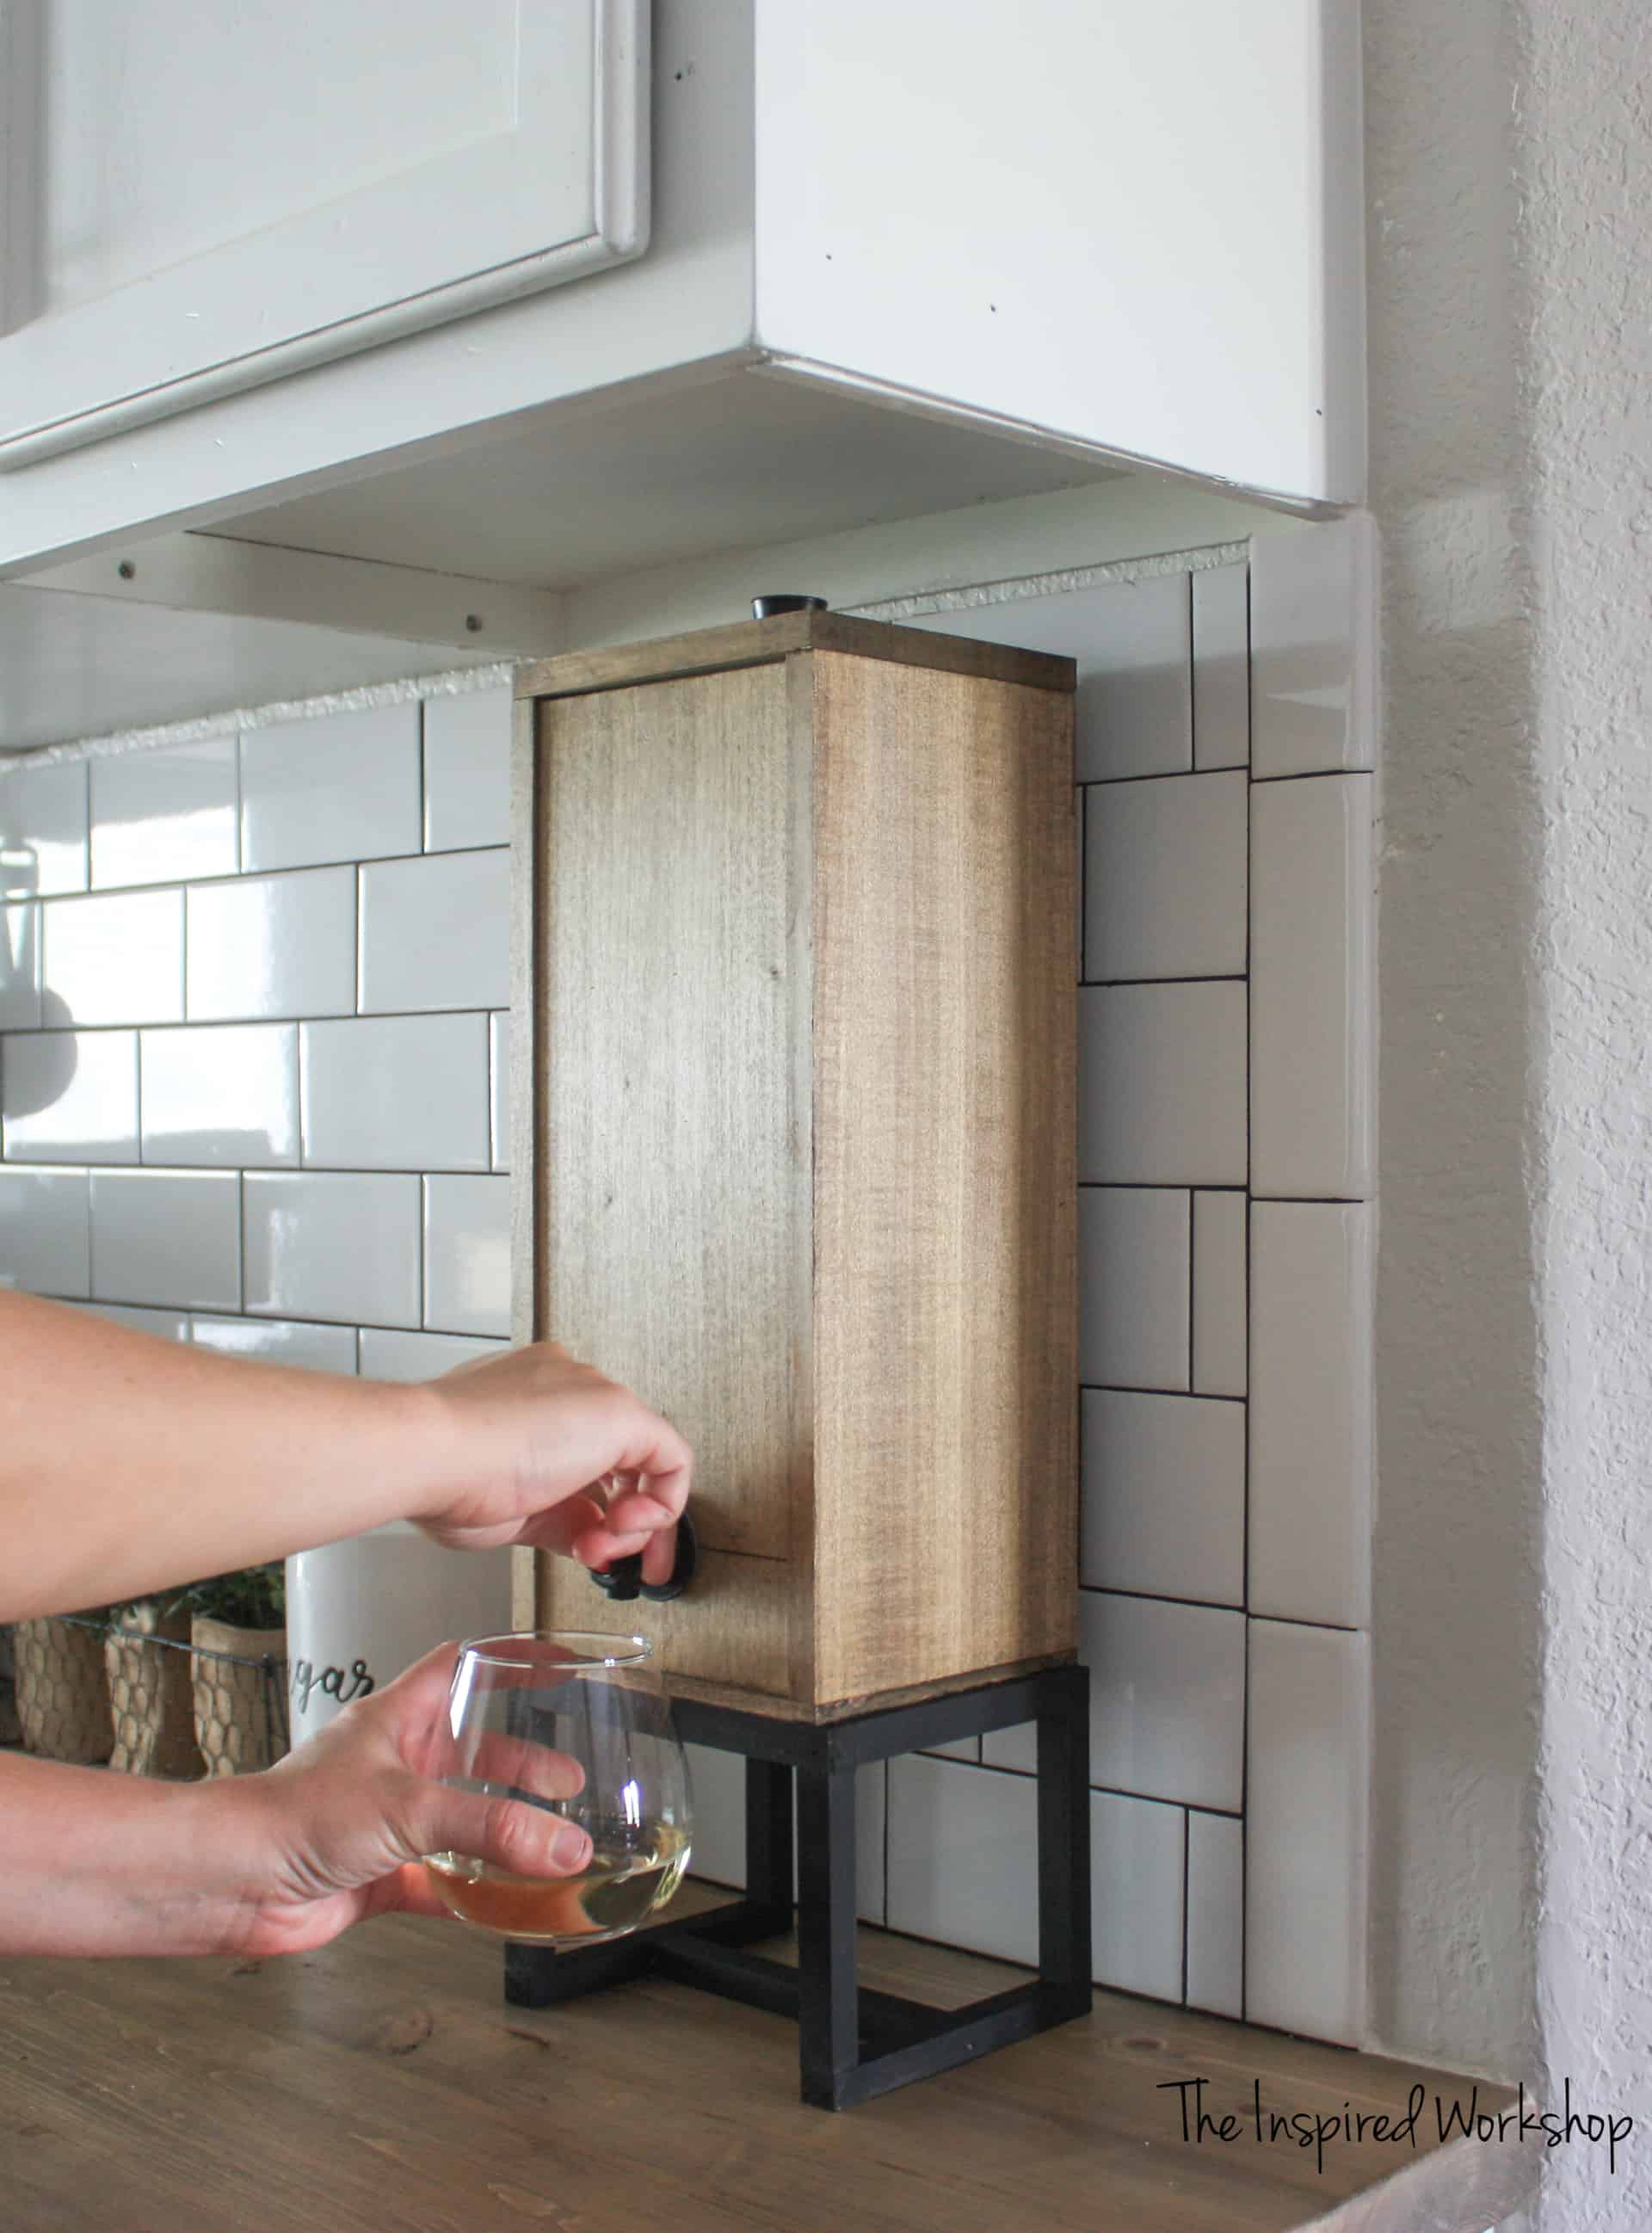 Dispensing Wine from the DIY Wine Dispenser